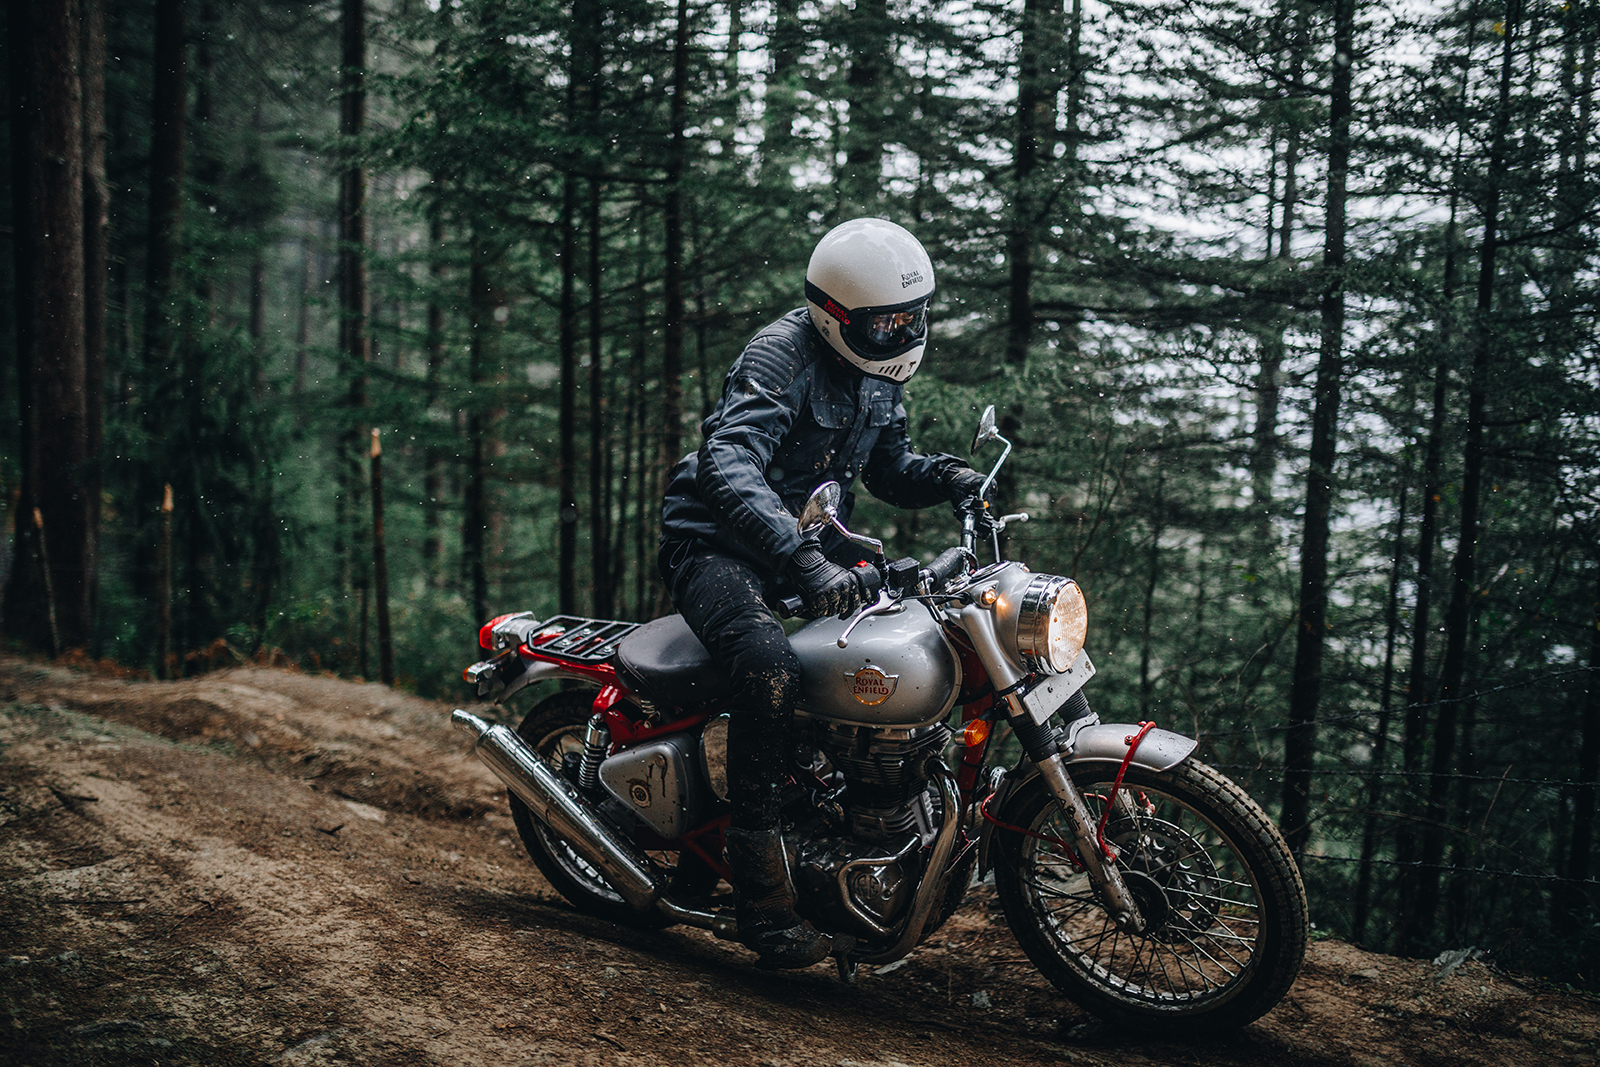 man riding the red royal enfield bullet 500 trials motorcycle in the forest